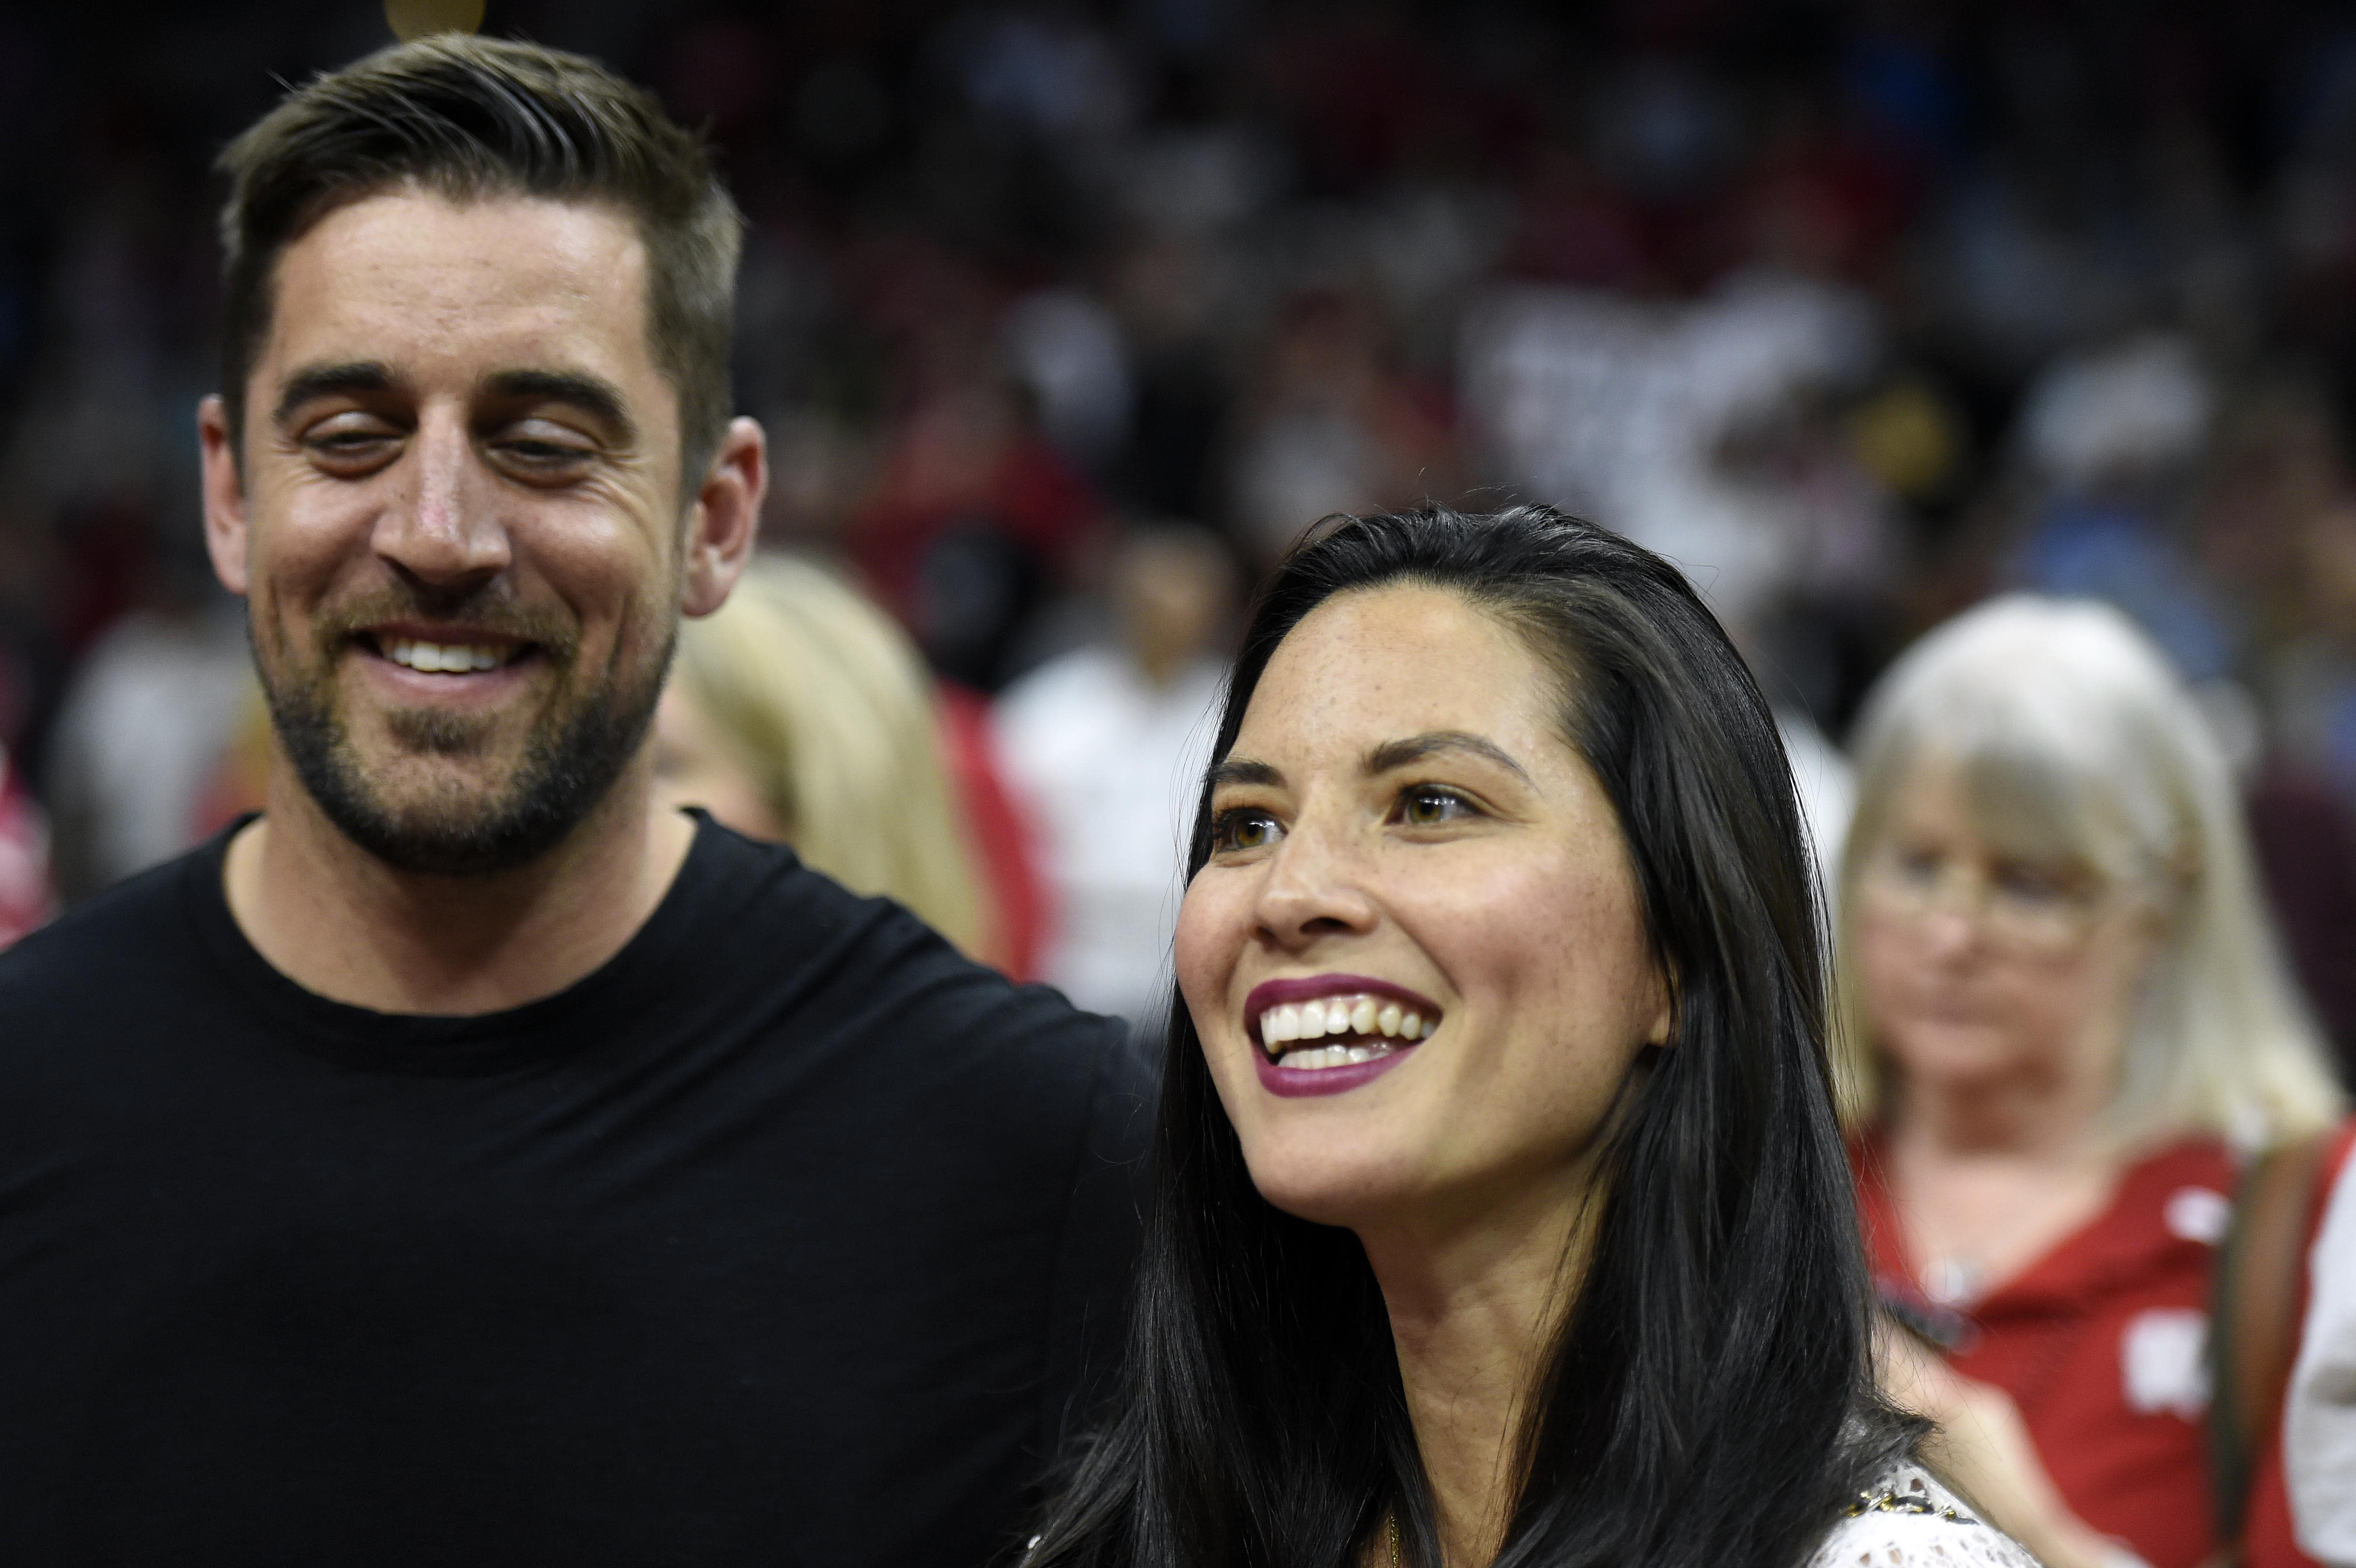 Aaron Rodgers responds to criticism of his Wisconsin fandom